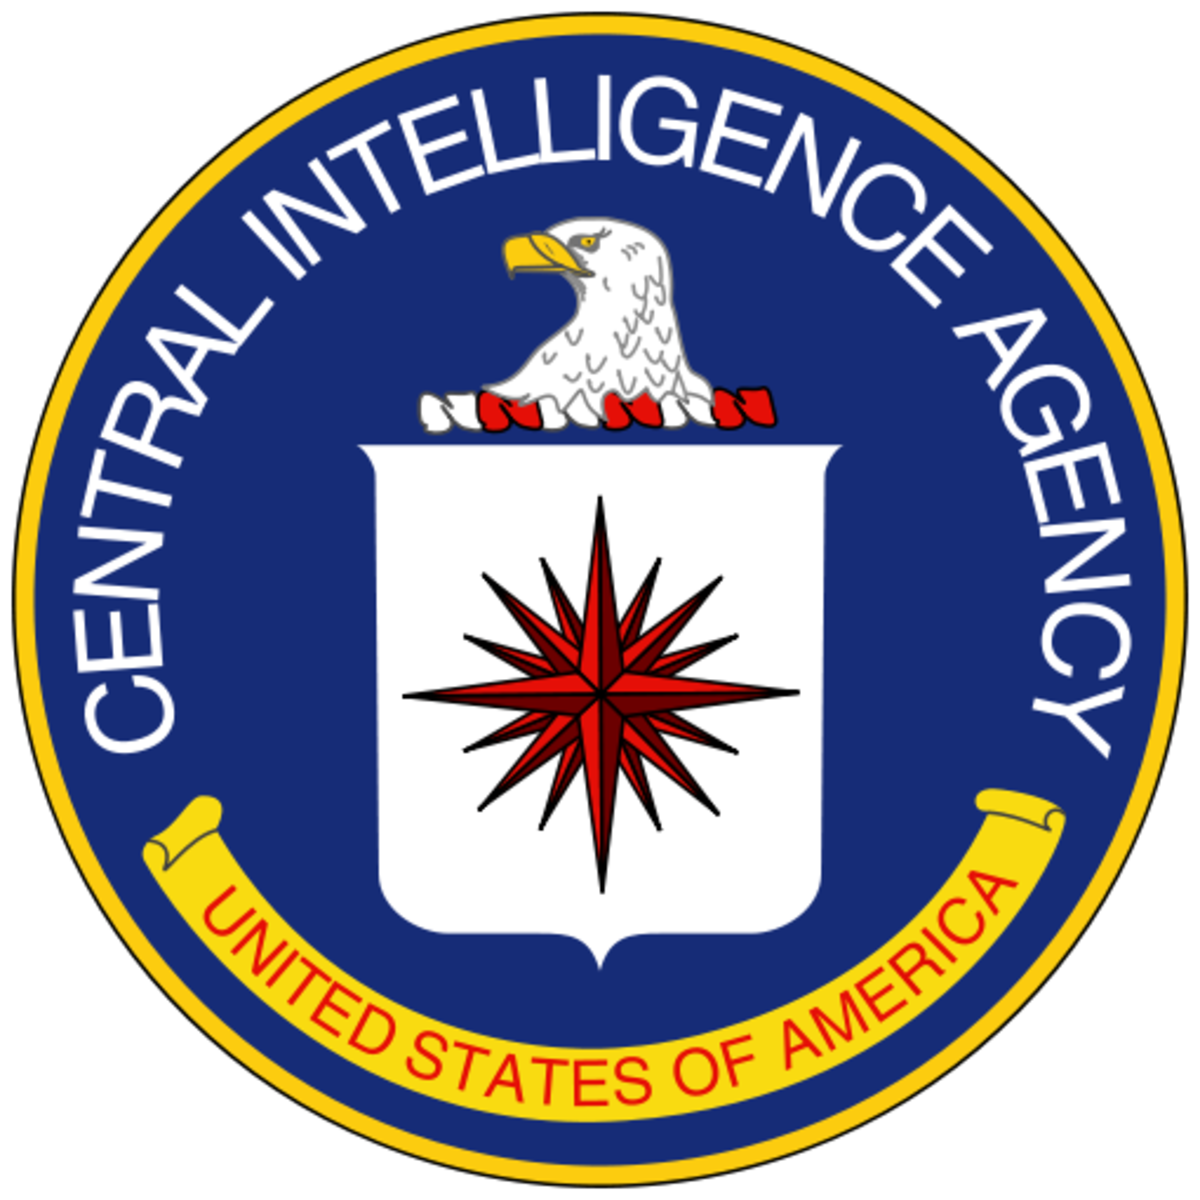 10 Worst Mistakes by the Central Intelligence Agency